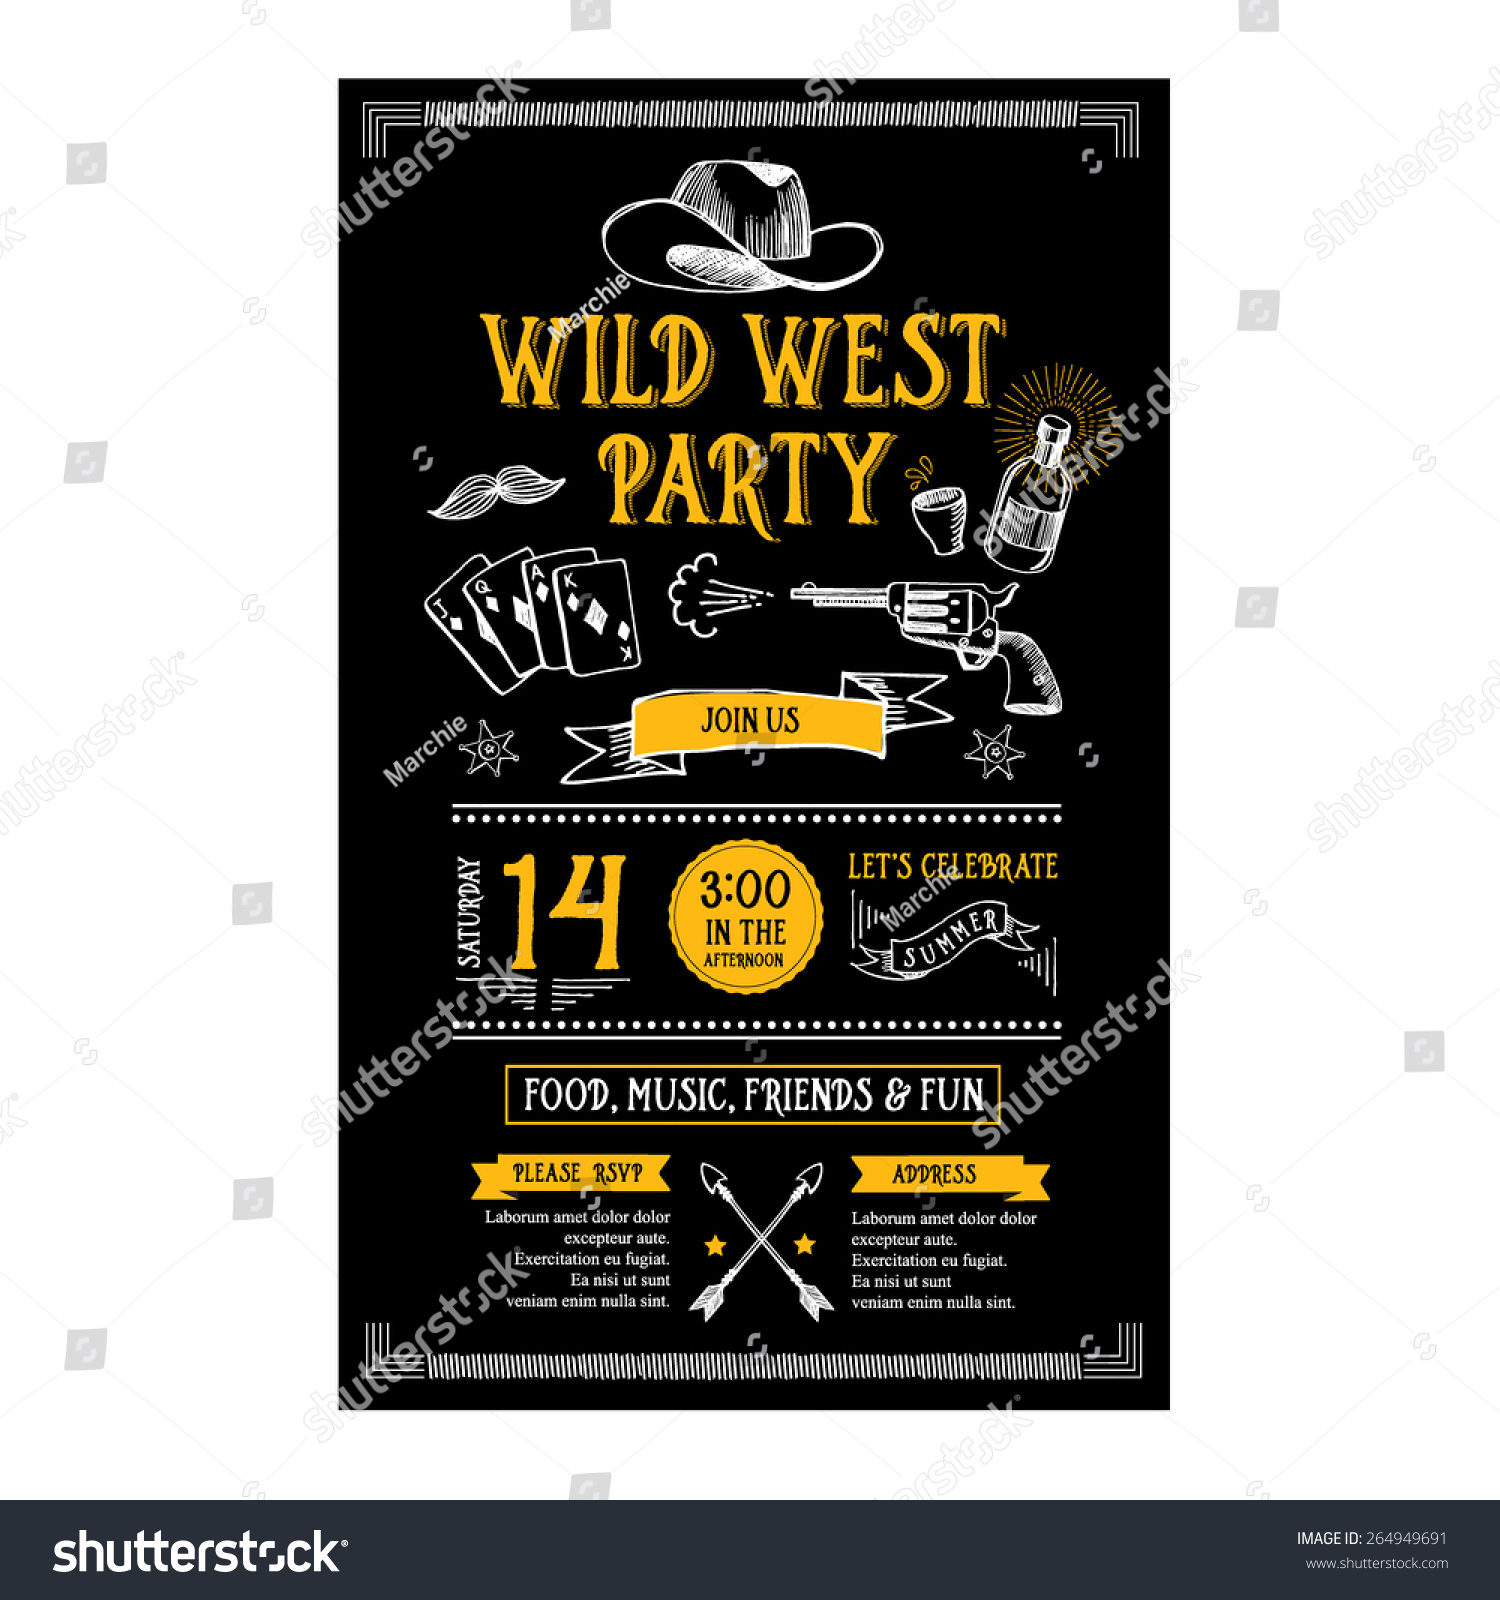 Invitation Wild West Party Flyertypography Design Vector – Wild West Party Invites